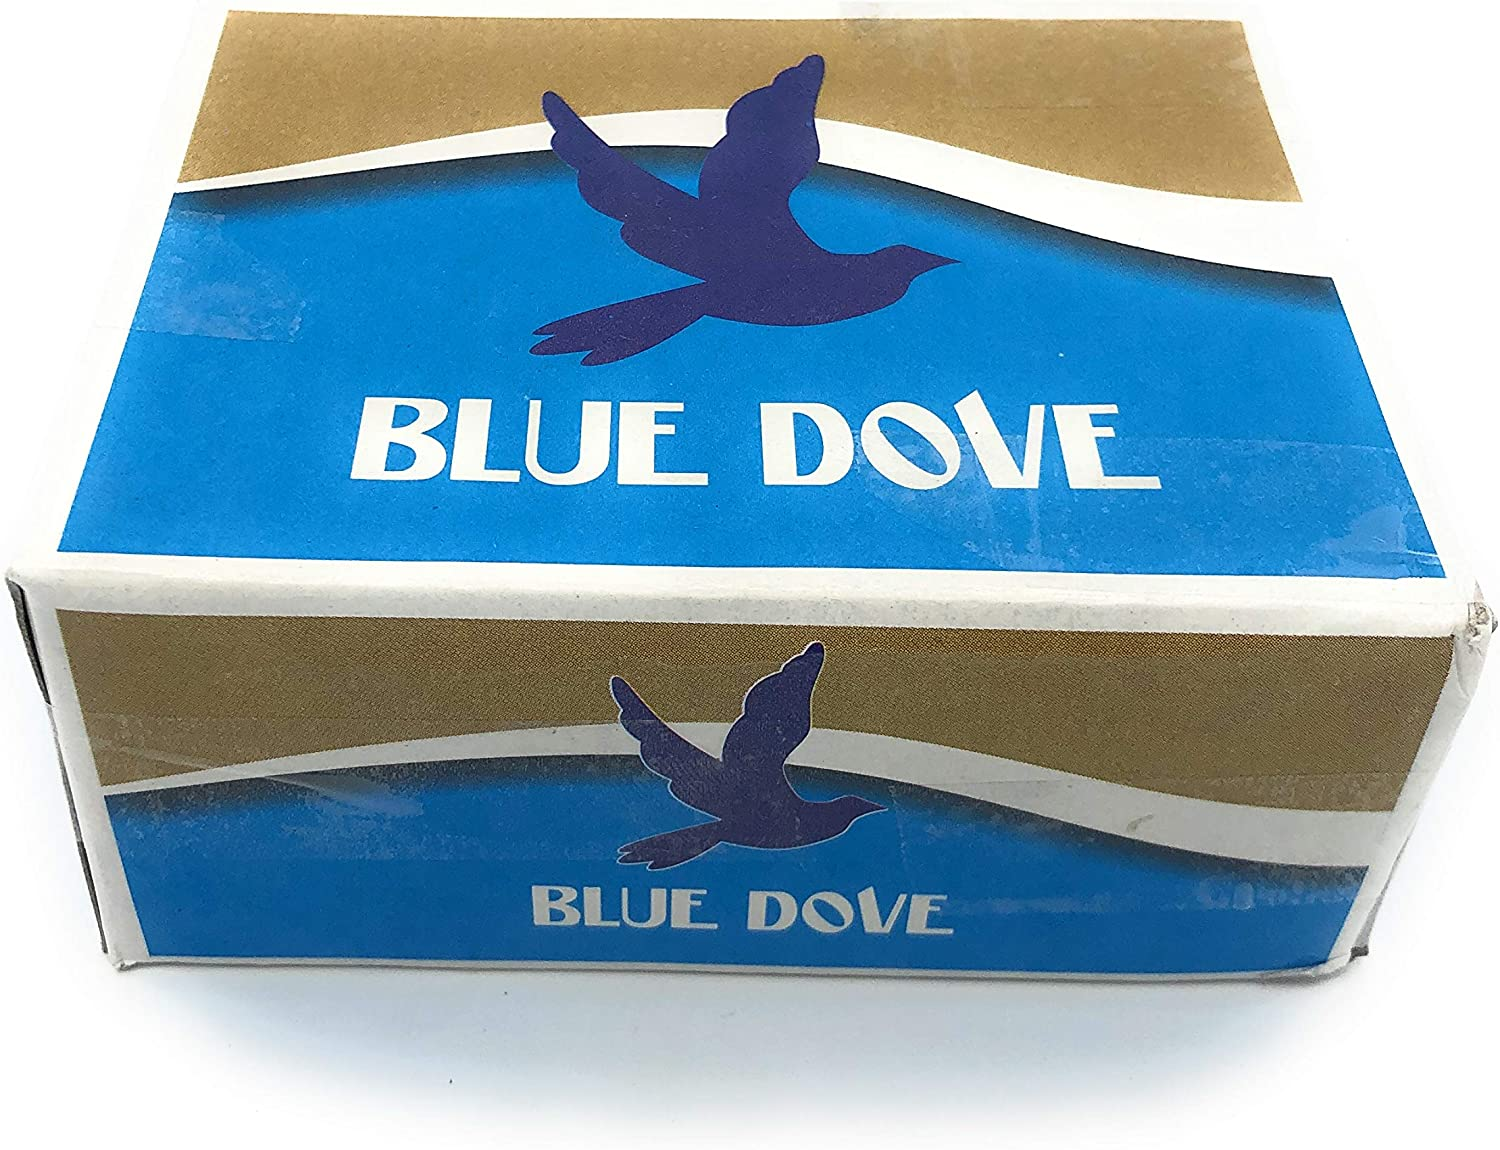 Blue Dove Squares Tablets Añil 4, 8, 16, 32 or 48 Tablets (32)